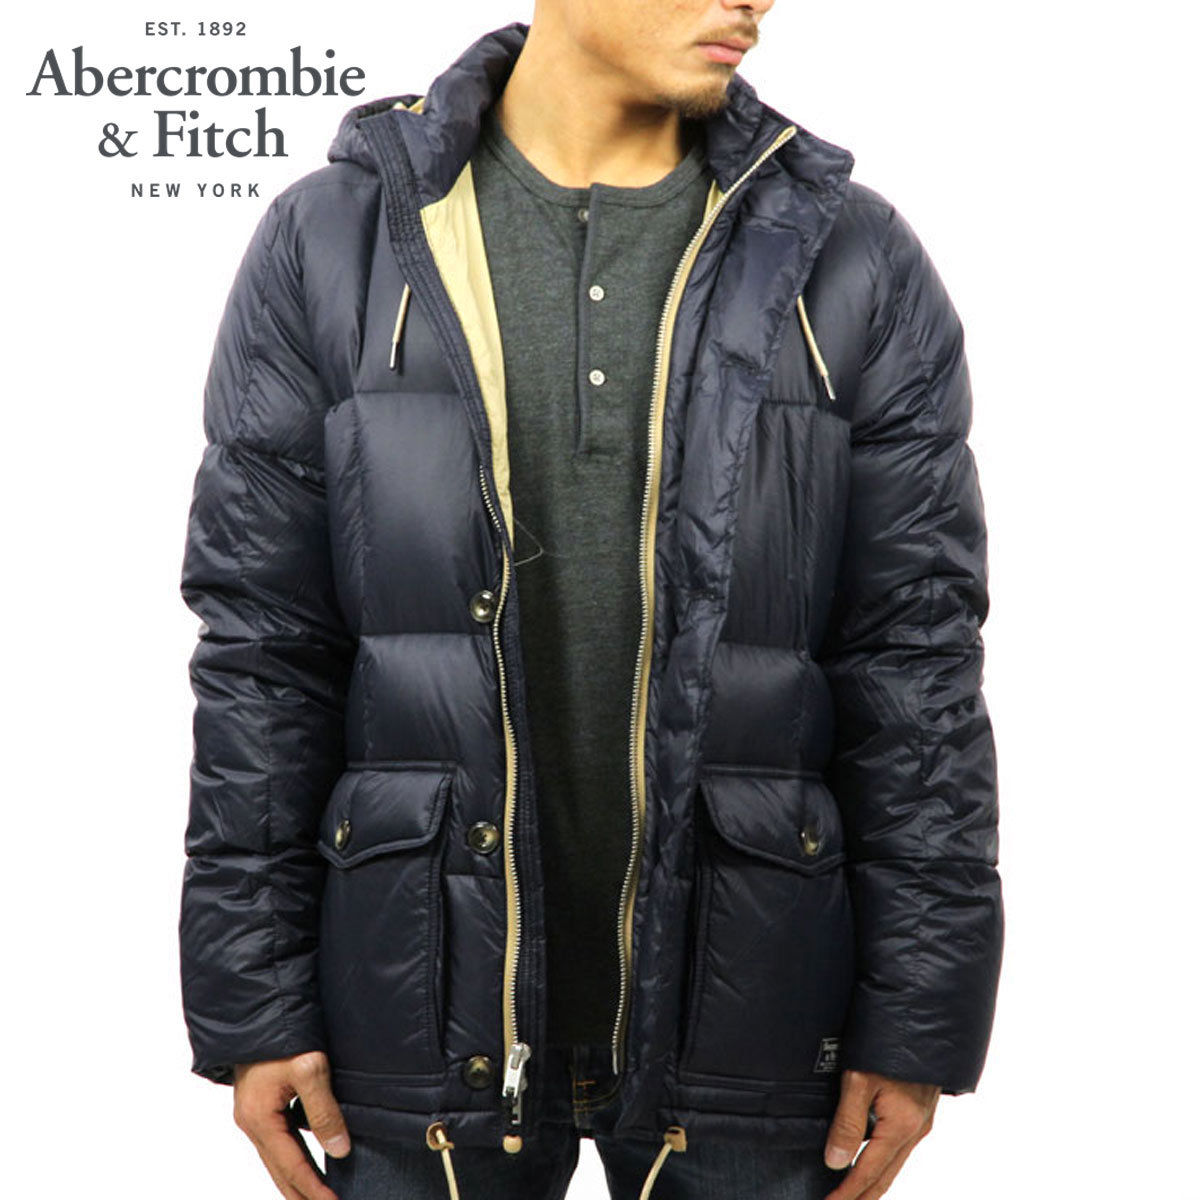 b7b64c17a ABBA black outer men's regular article Abercrombie & Fitch jacket jacket  DOWN PUFFER JACKET 132-328-1034-200 D00S20